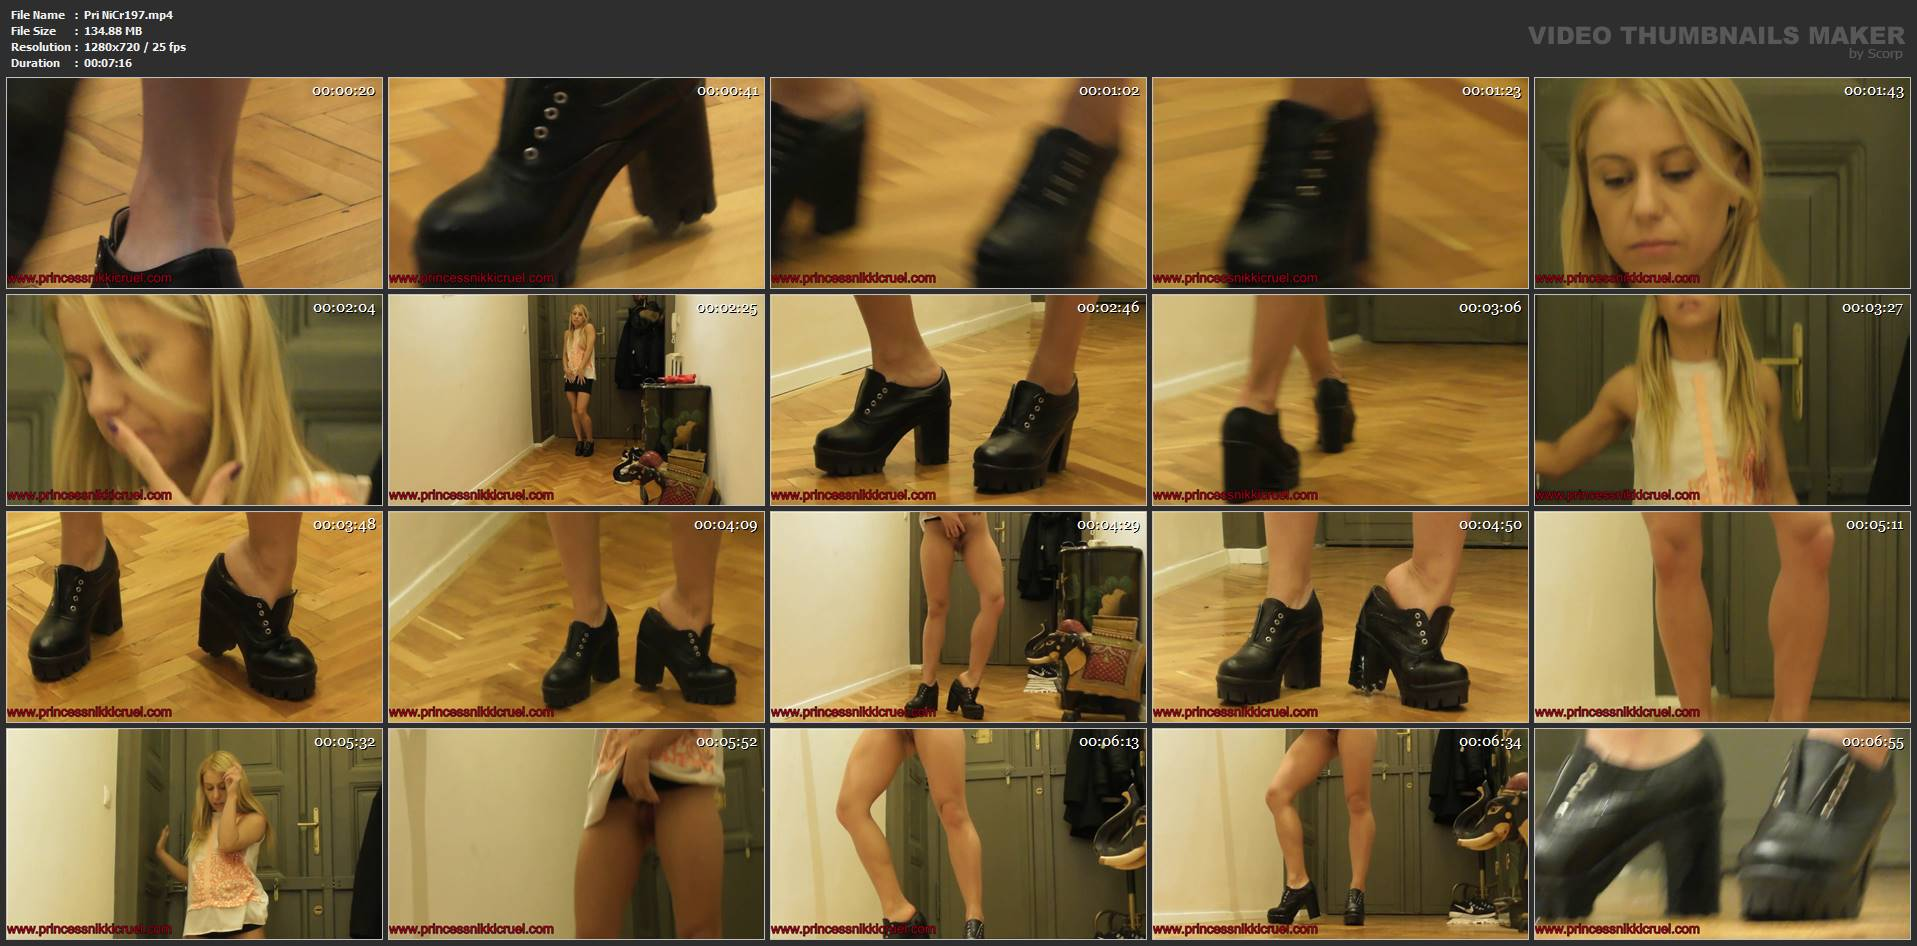 [PRINCESS NIKKI'S EMPIRE] Watch Me As I Pee In My Shoes Second Cam. Featuring: Nikki Cruel [HD][720p][MP4]